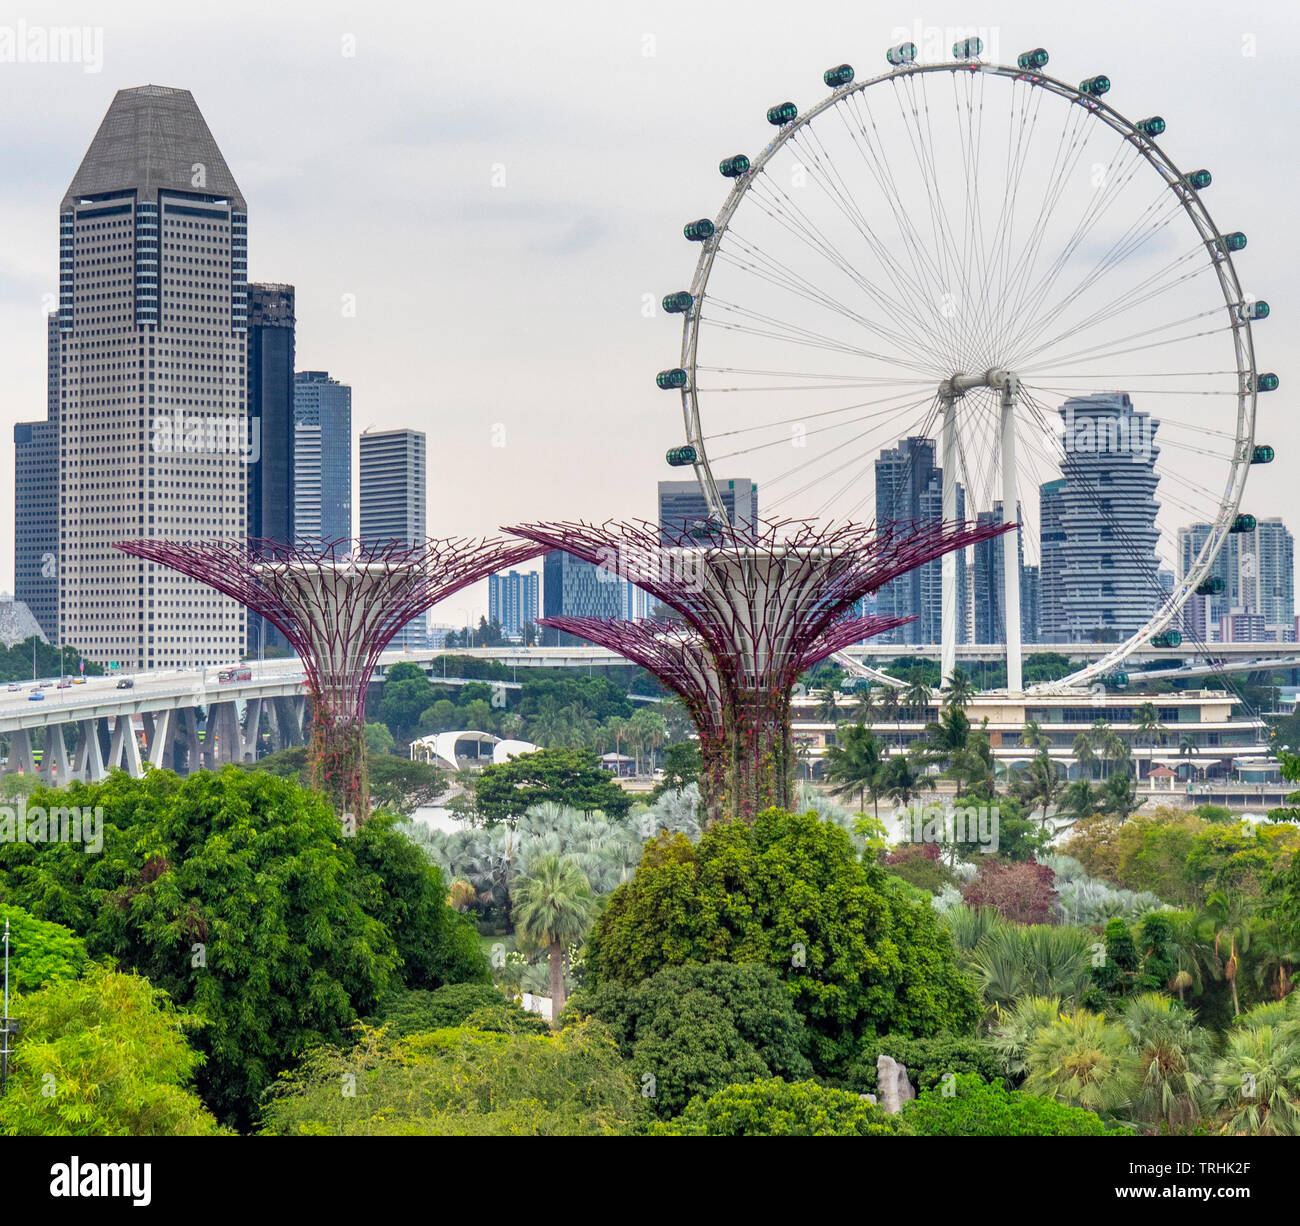 Singapore Flyer Ferris Wheel And Millenia Tower And Supertree Grove Vertical Garden At Gardens By The Bay Singapore Stock Photo Alamy